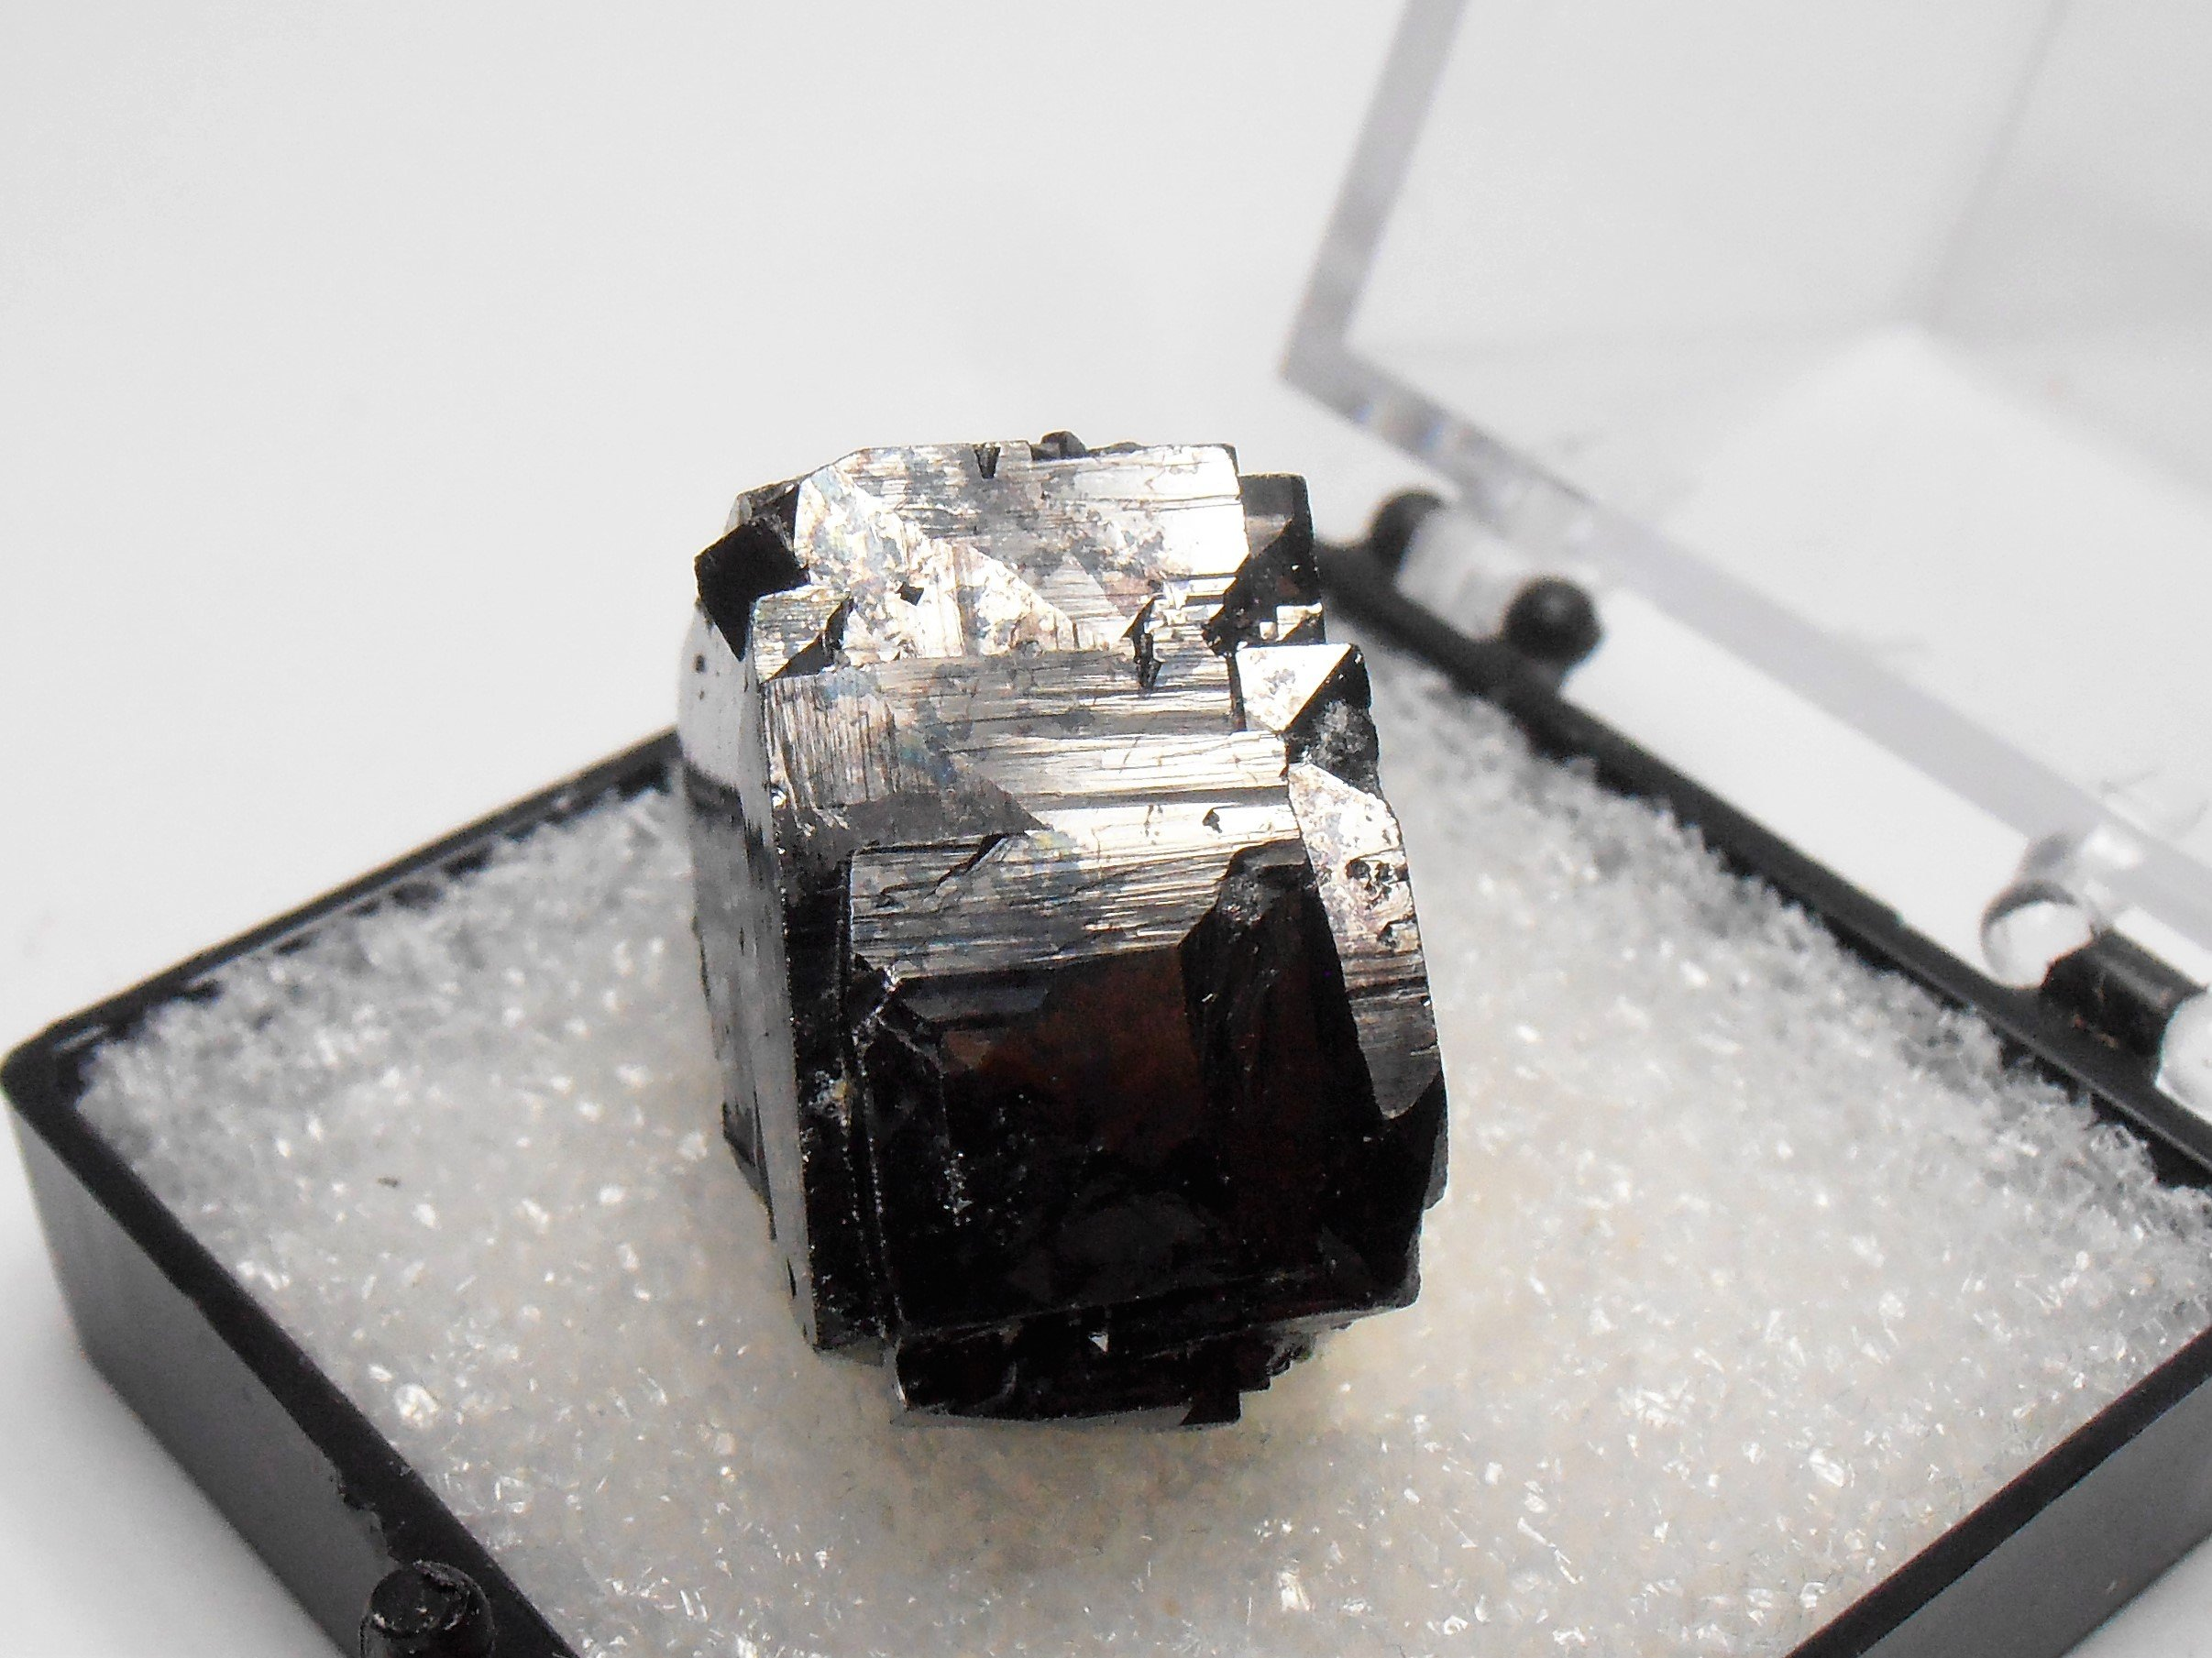 Magnetite - Rare Cubic Habit from Balmat, New York